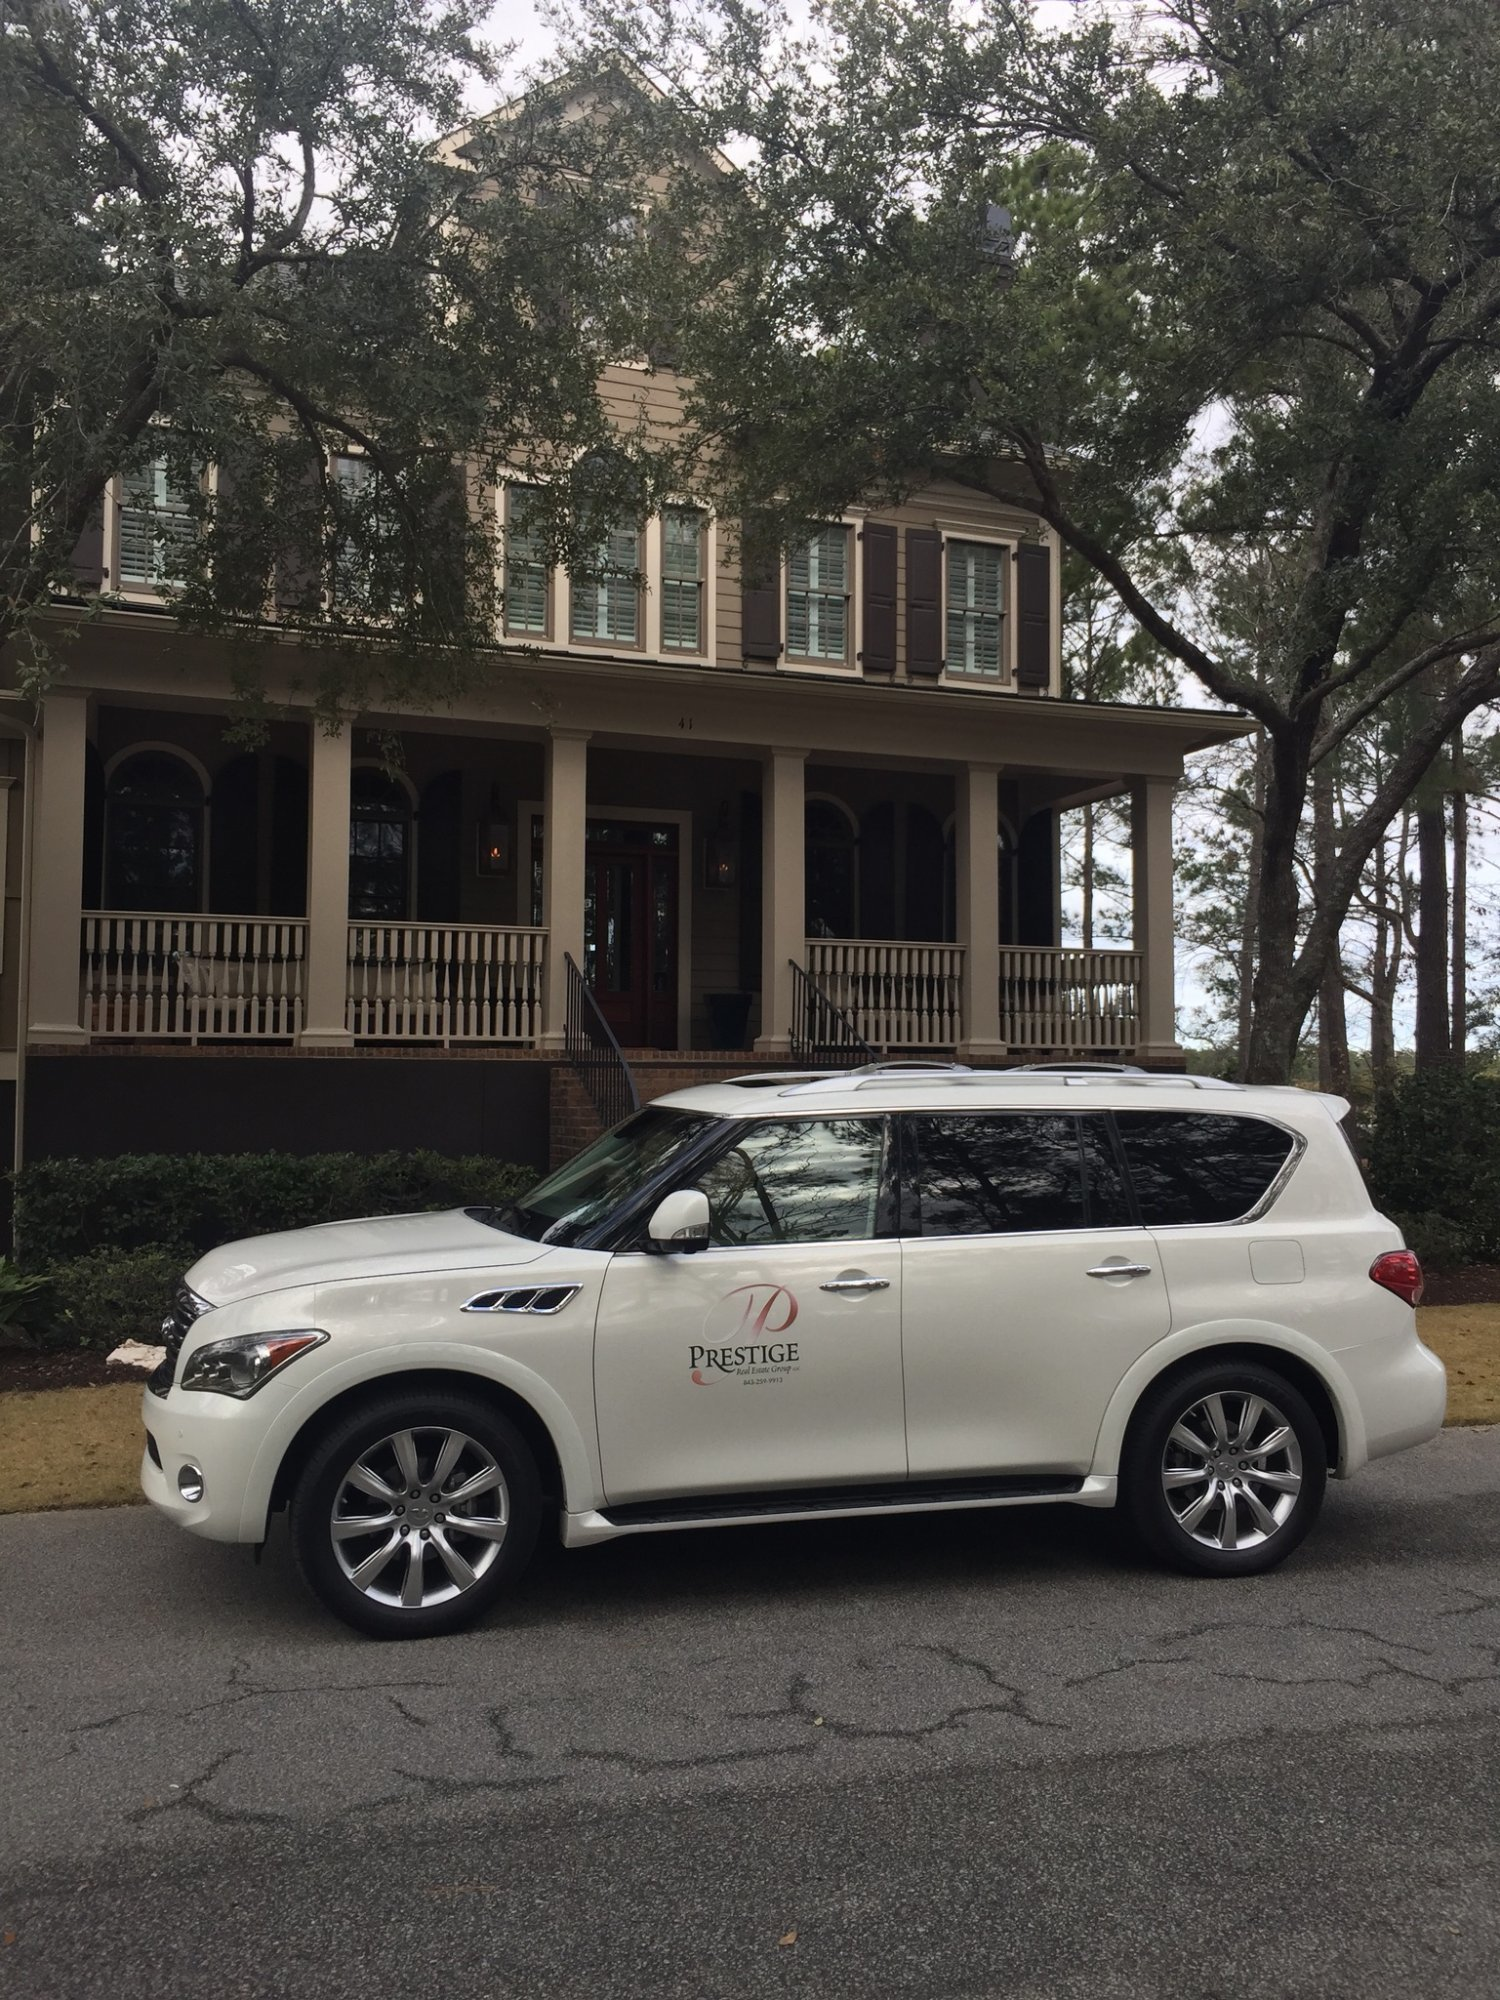 Prestige Real Estate Group QX56